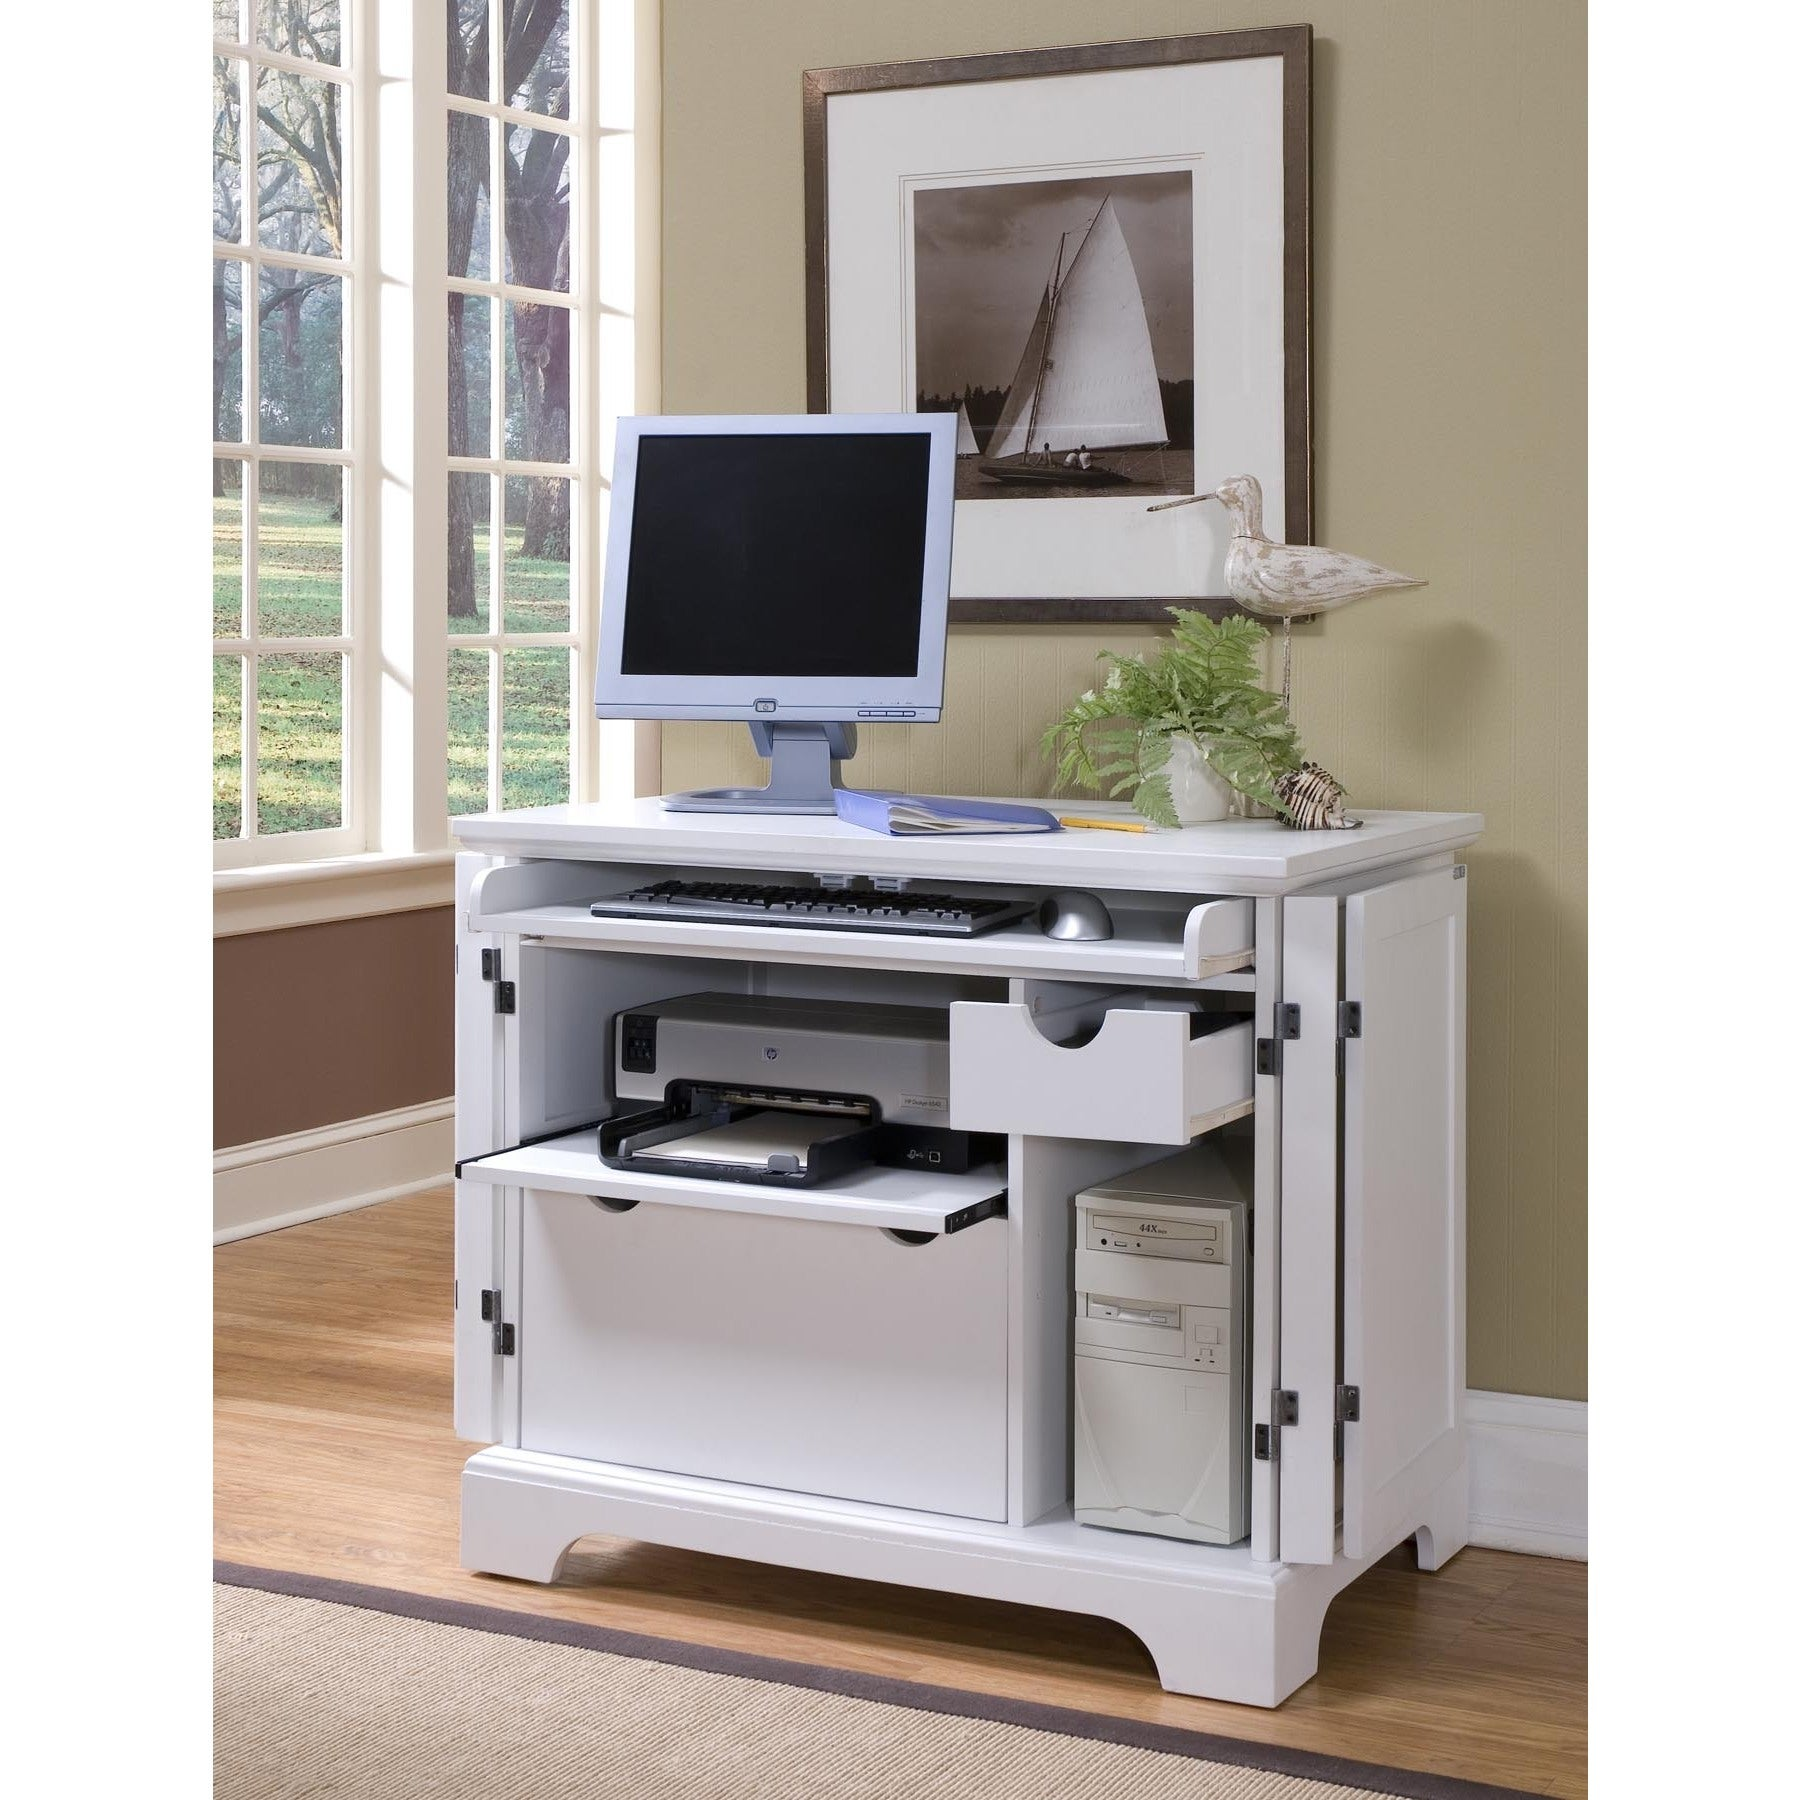 Picture of: Naples White Compact Computer Desk By Home Styles Overstock 10898533